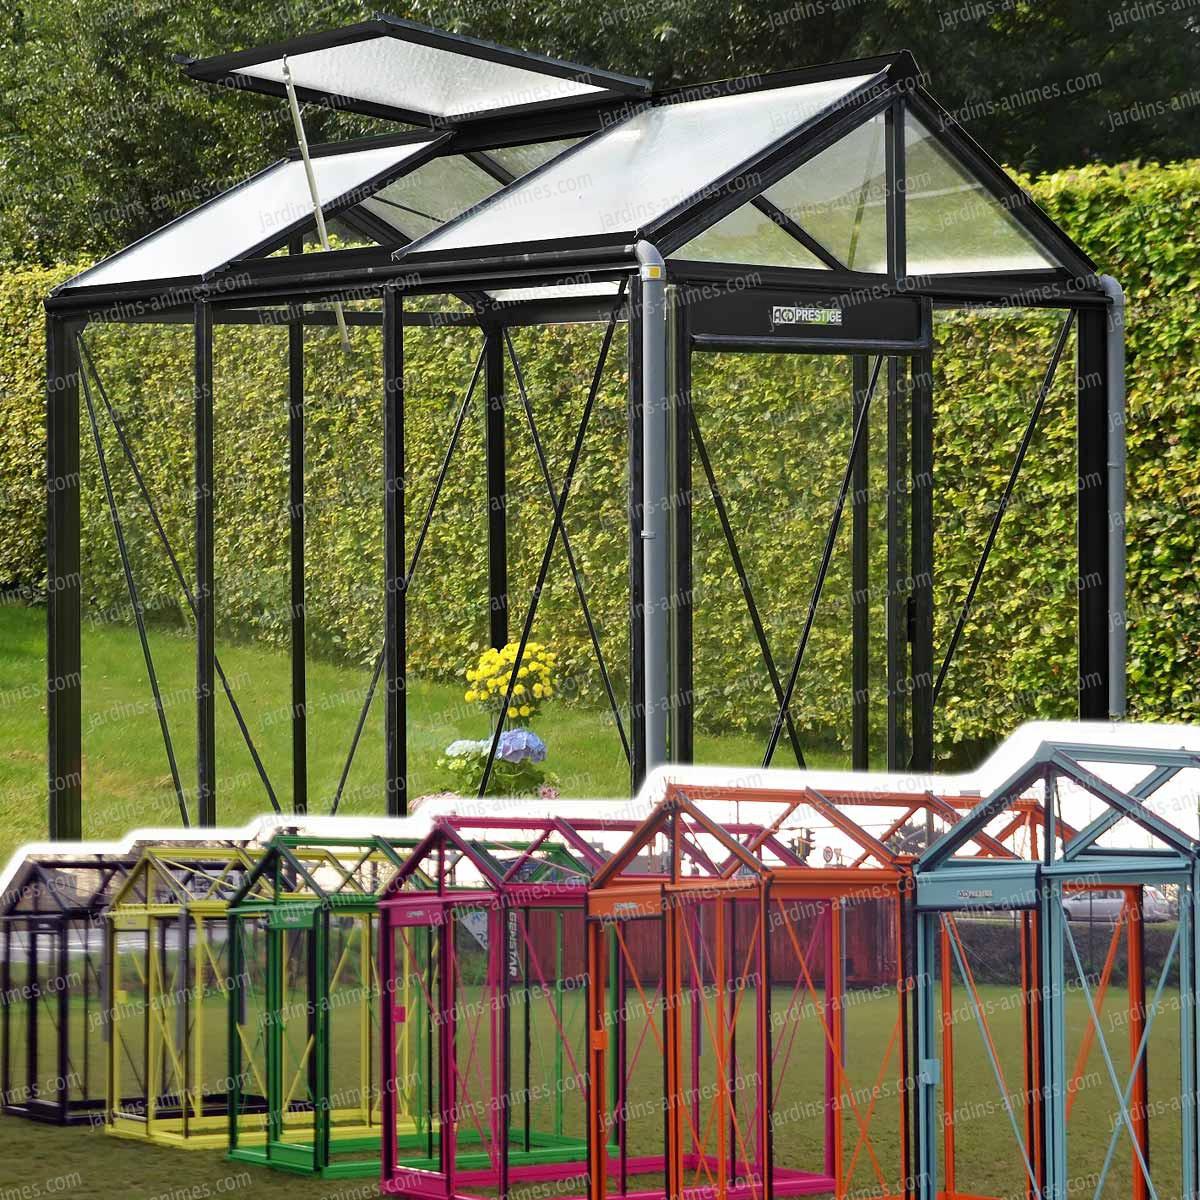 kiosque de jardin a vendre. Black Bedroom Furniture Sets. Home Design Ideas